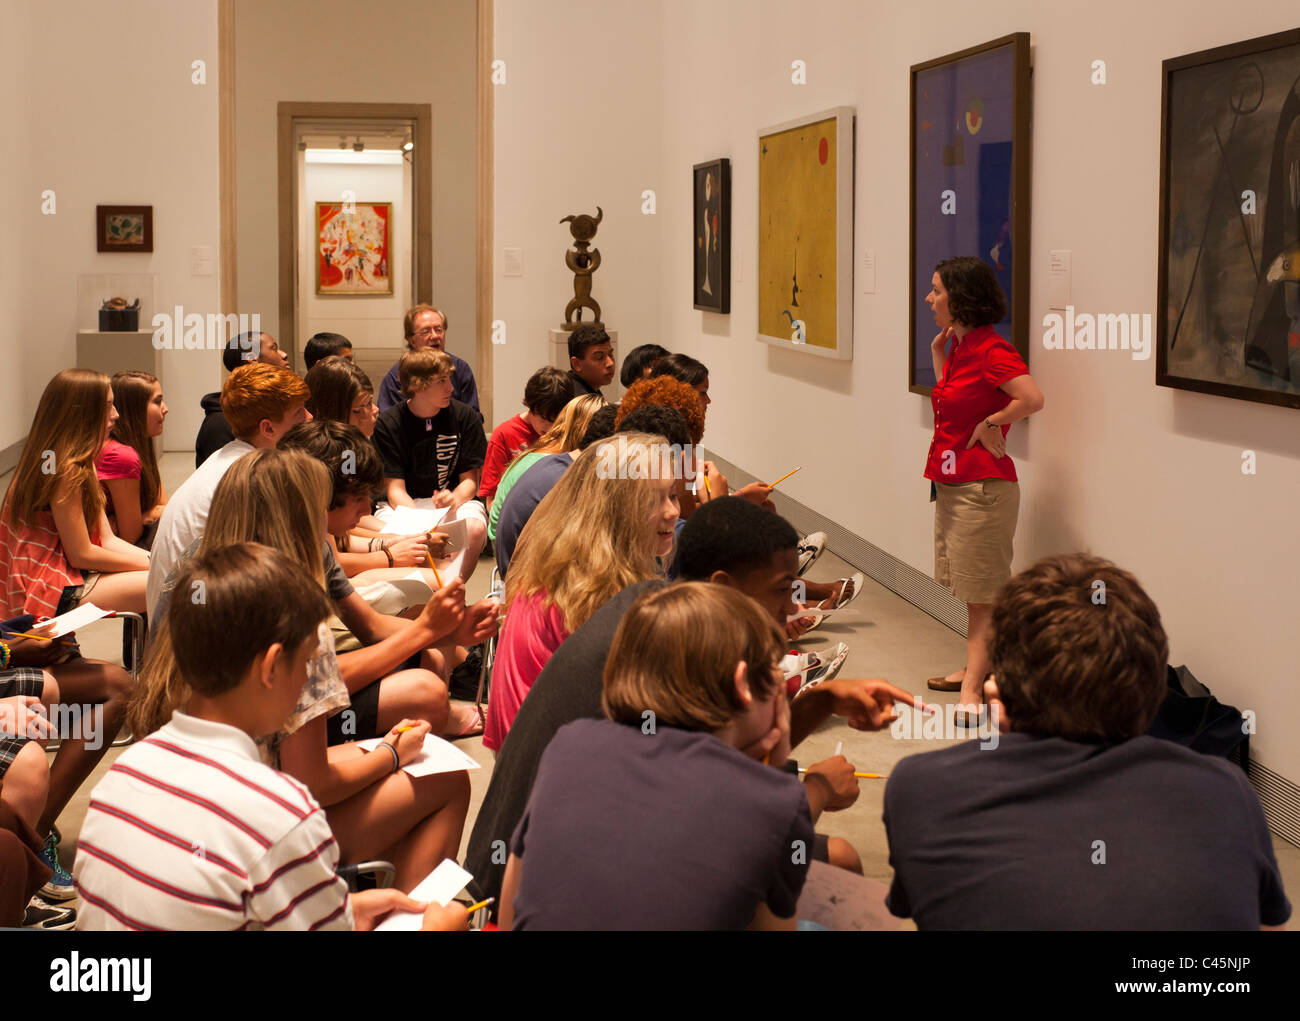 museum guide or teacher lecturing to high school students at Philadelphia Museum of Art, Philadelphia, Pennsylvania, - Stock Image